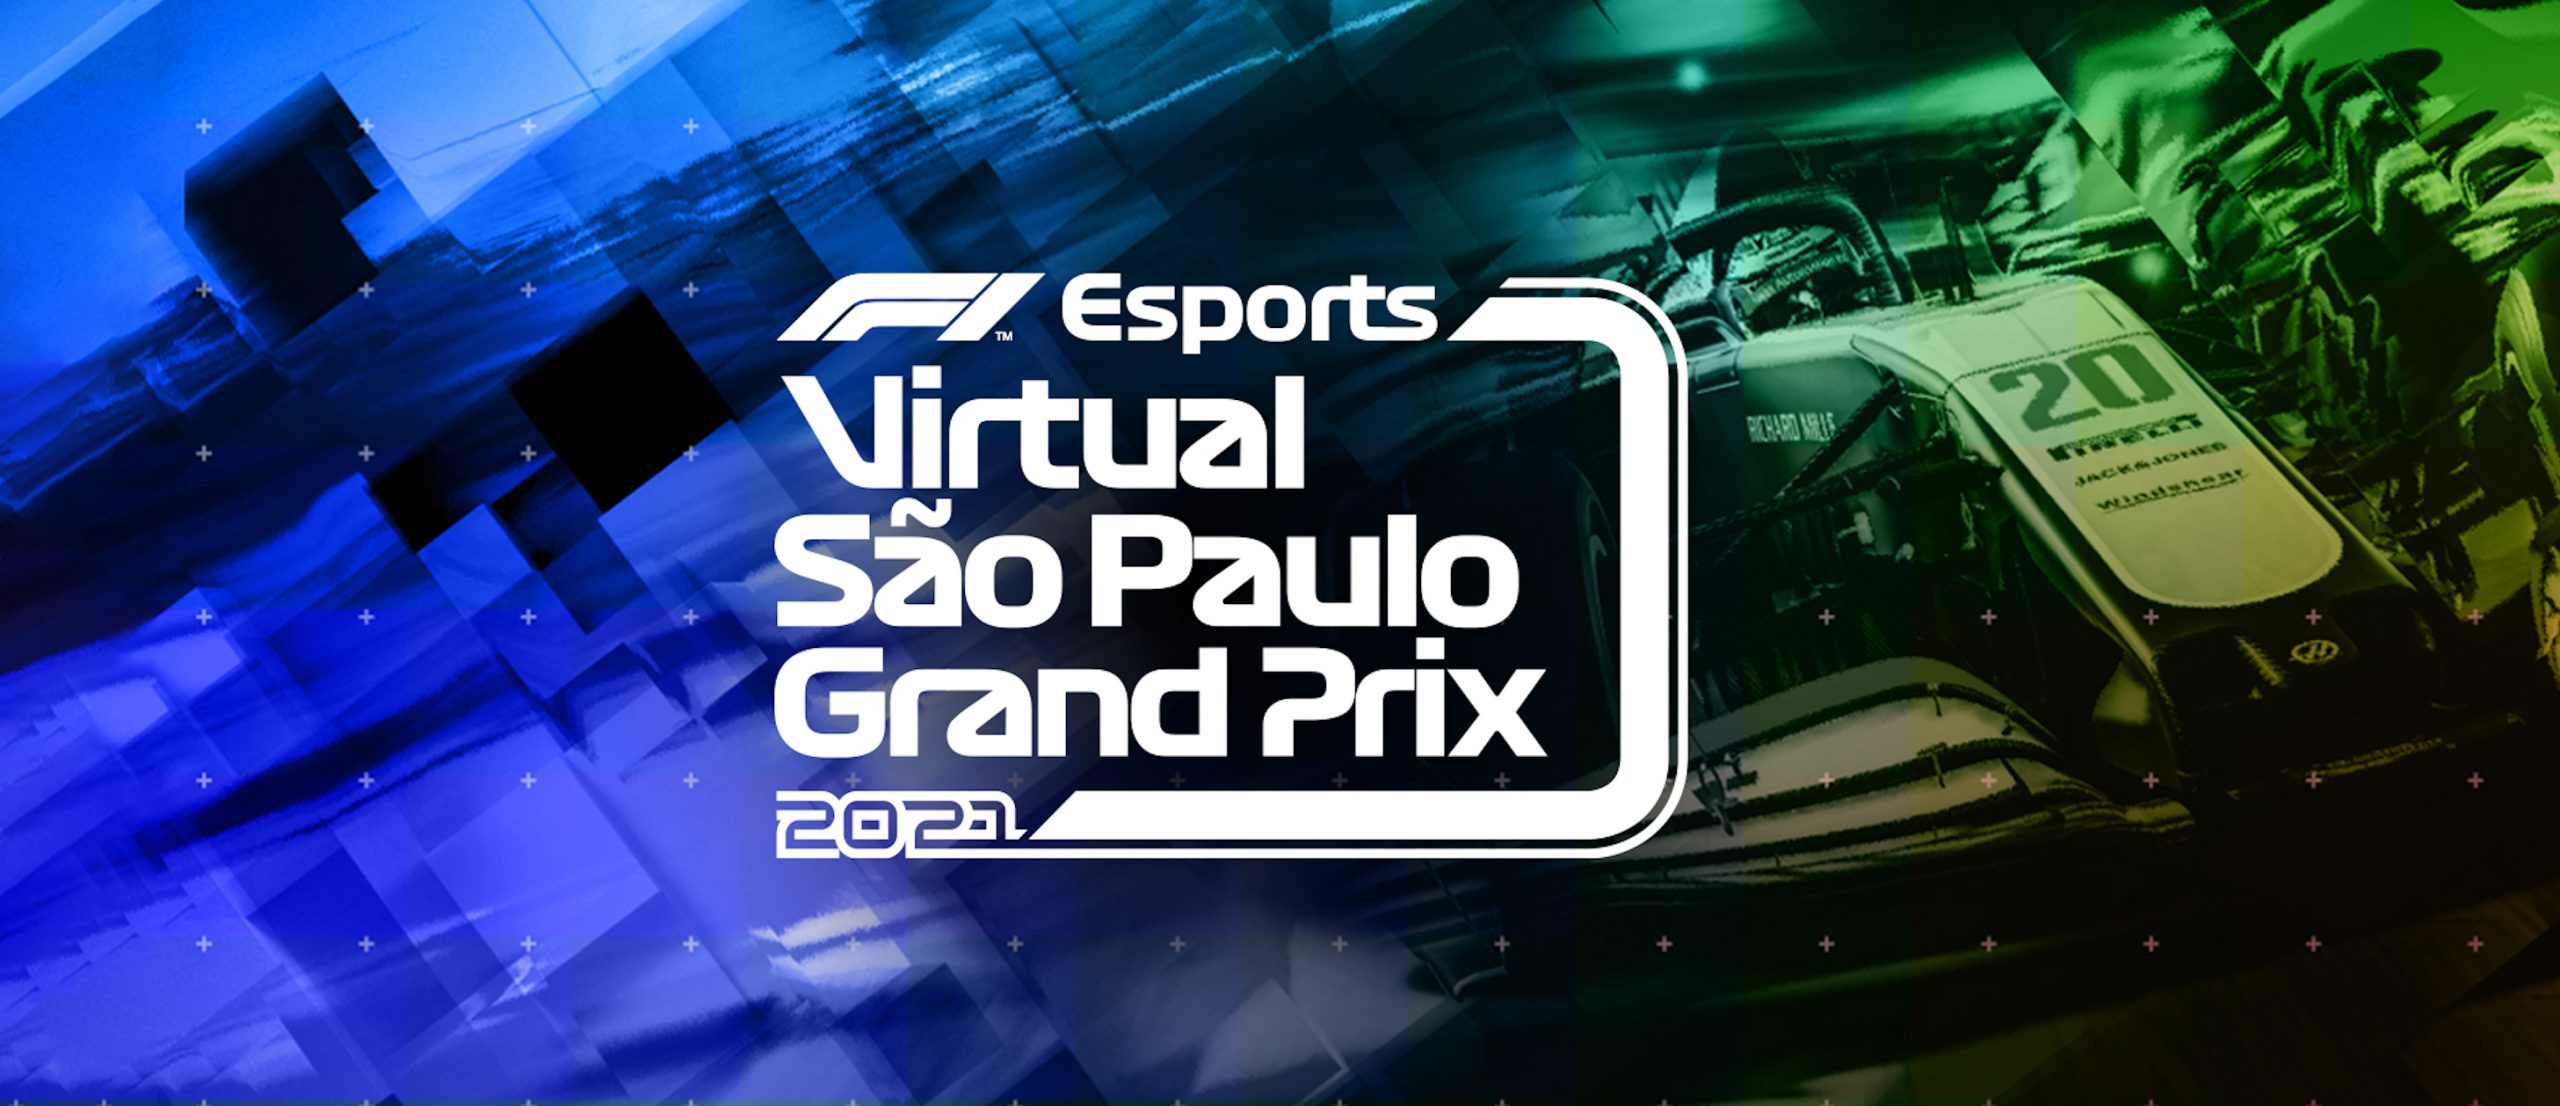 Who's Driving in the Virtual Sao Paulo Grand Prix?